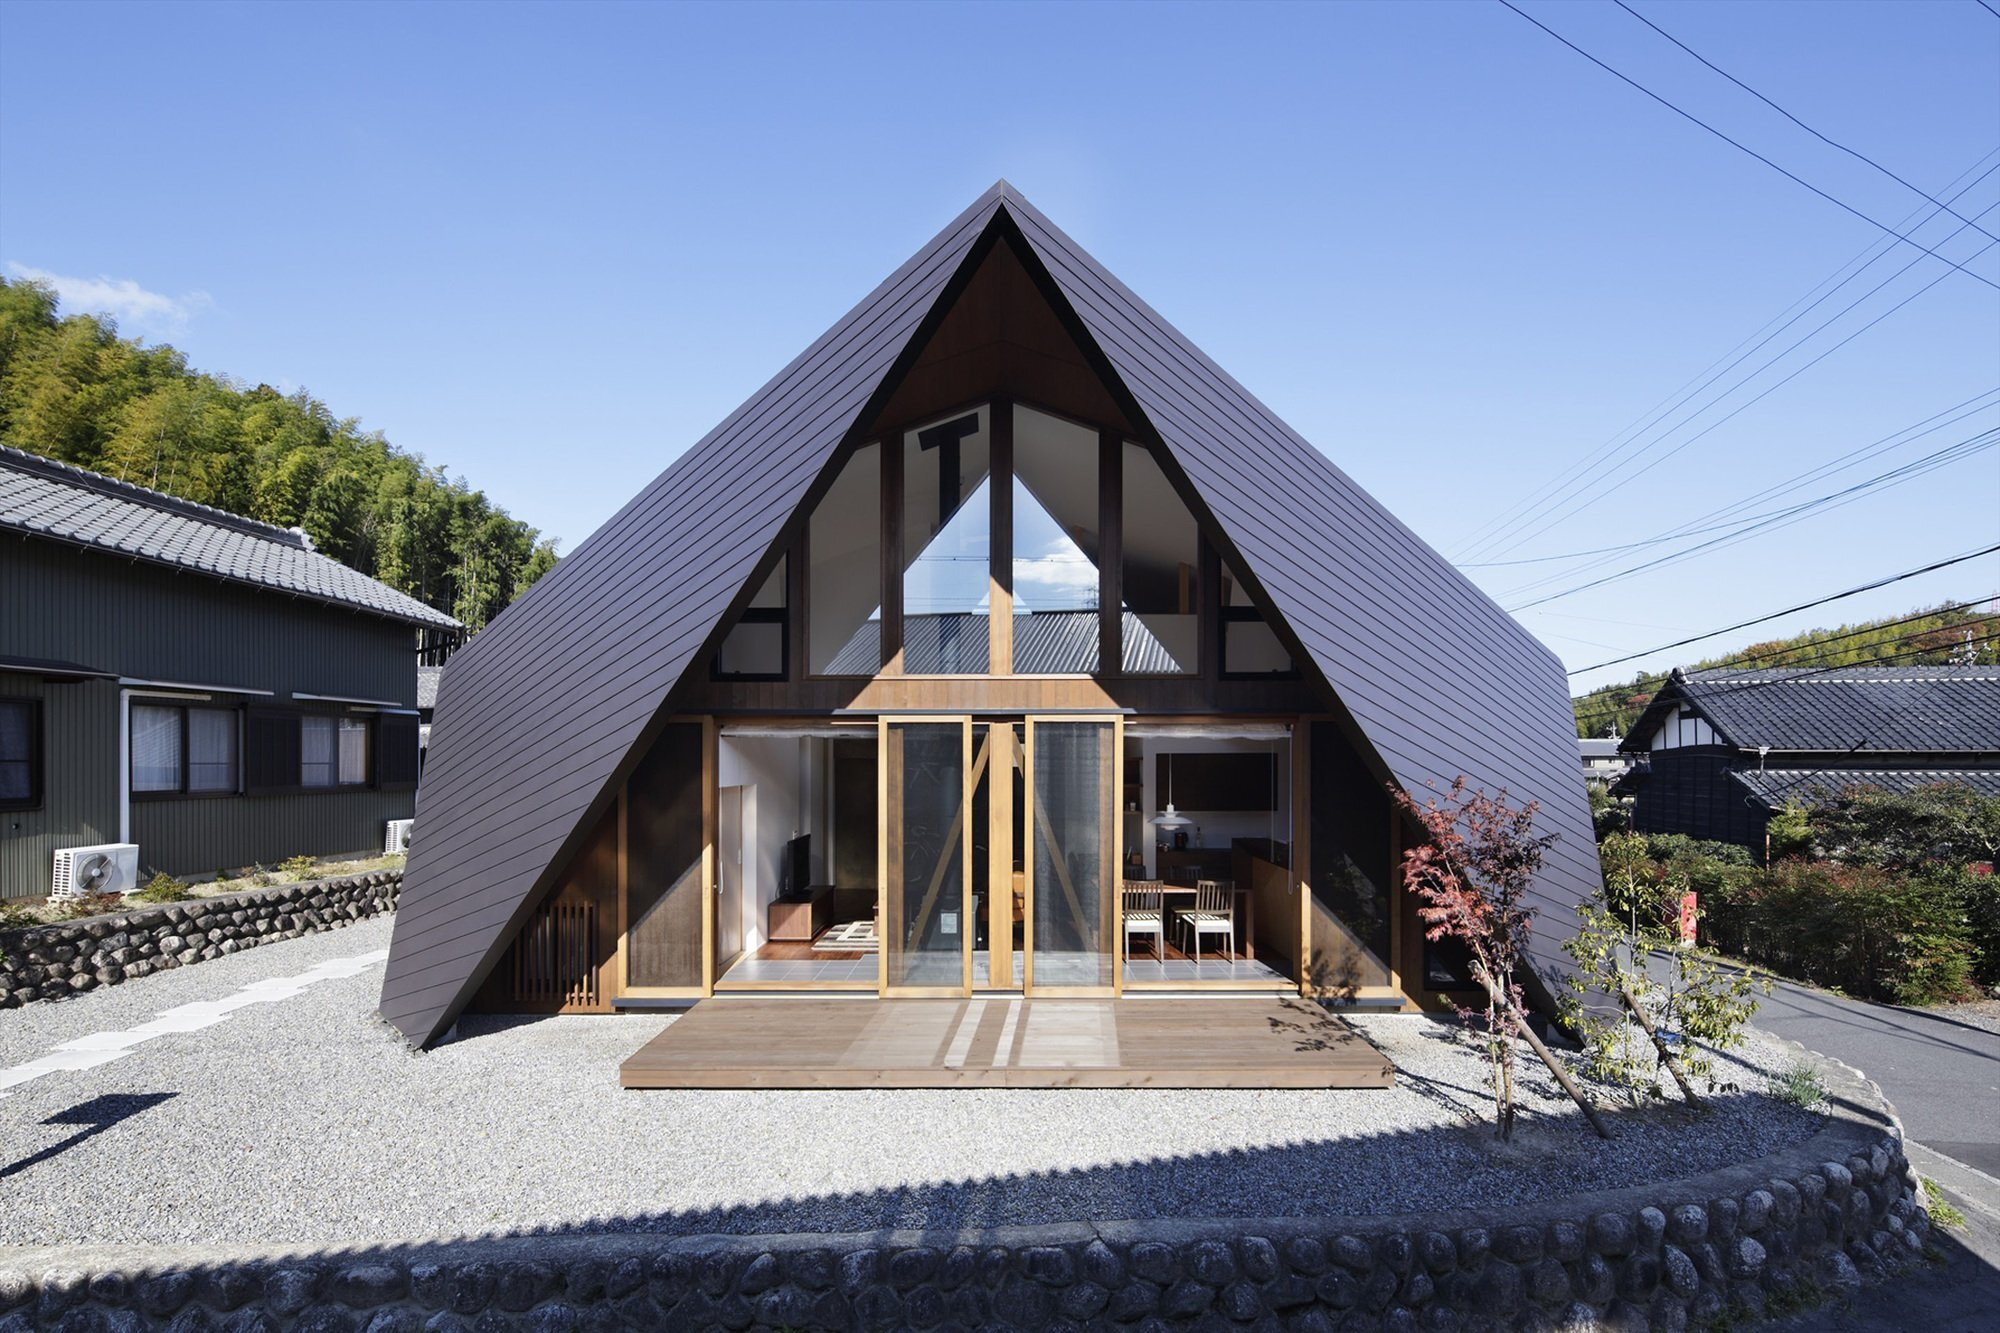 Holiday Origami - TSC Architects - Mie - Japan - Small House - Exterior - Humble Homes